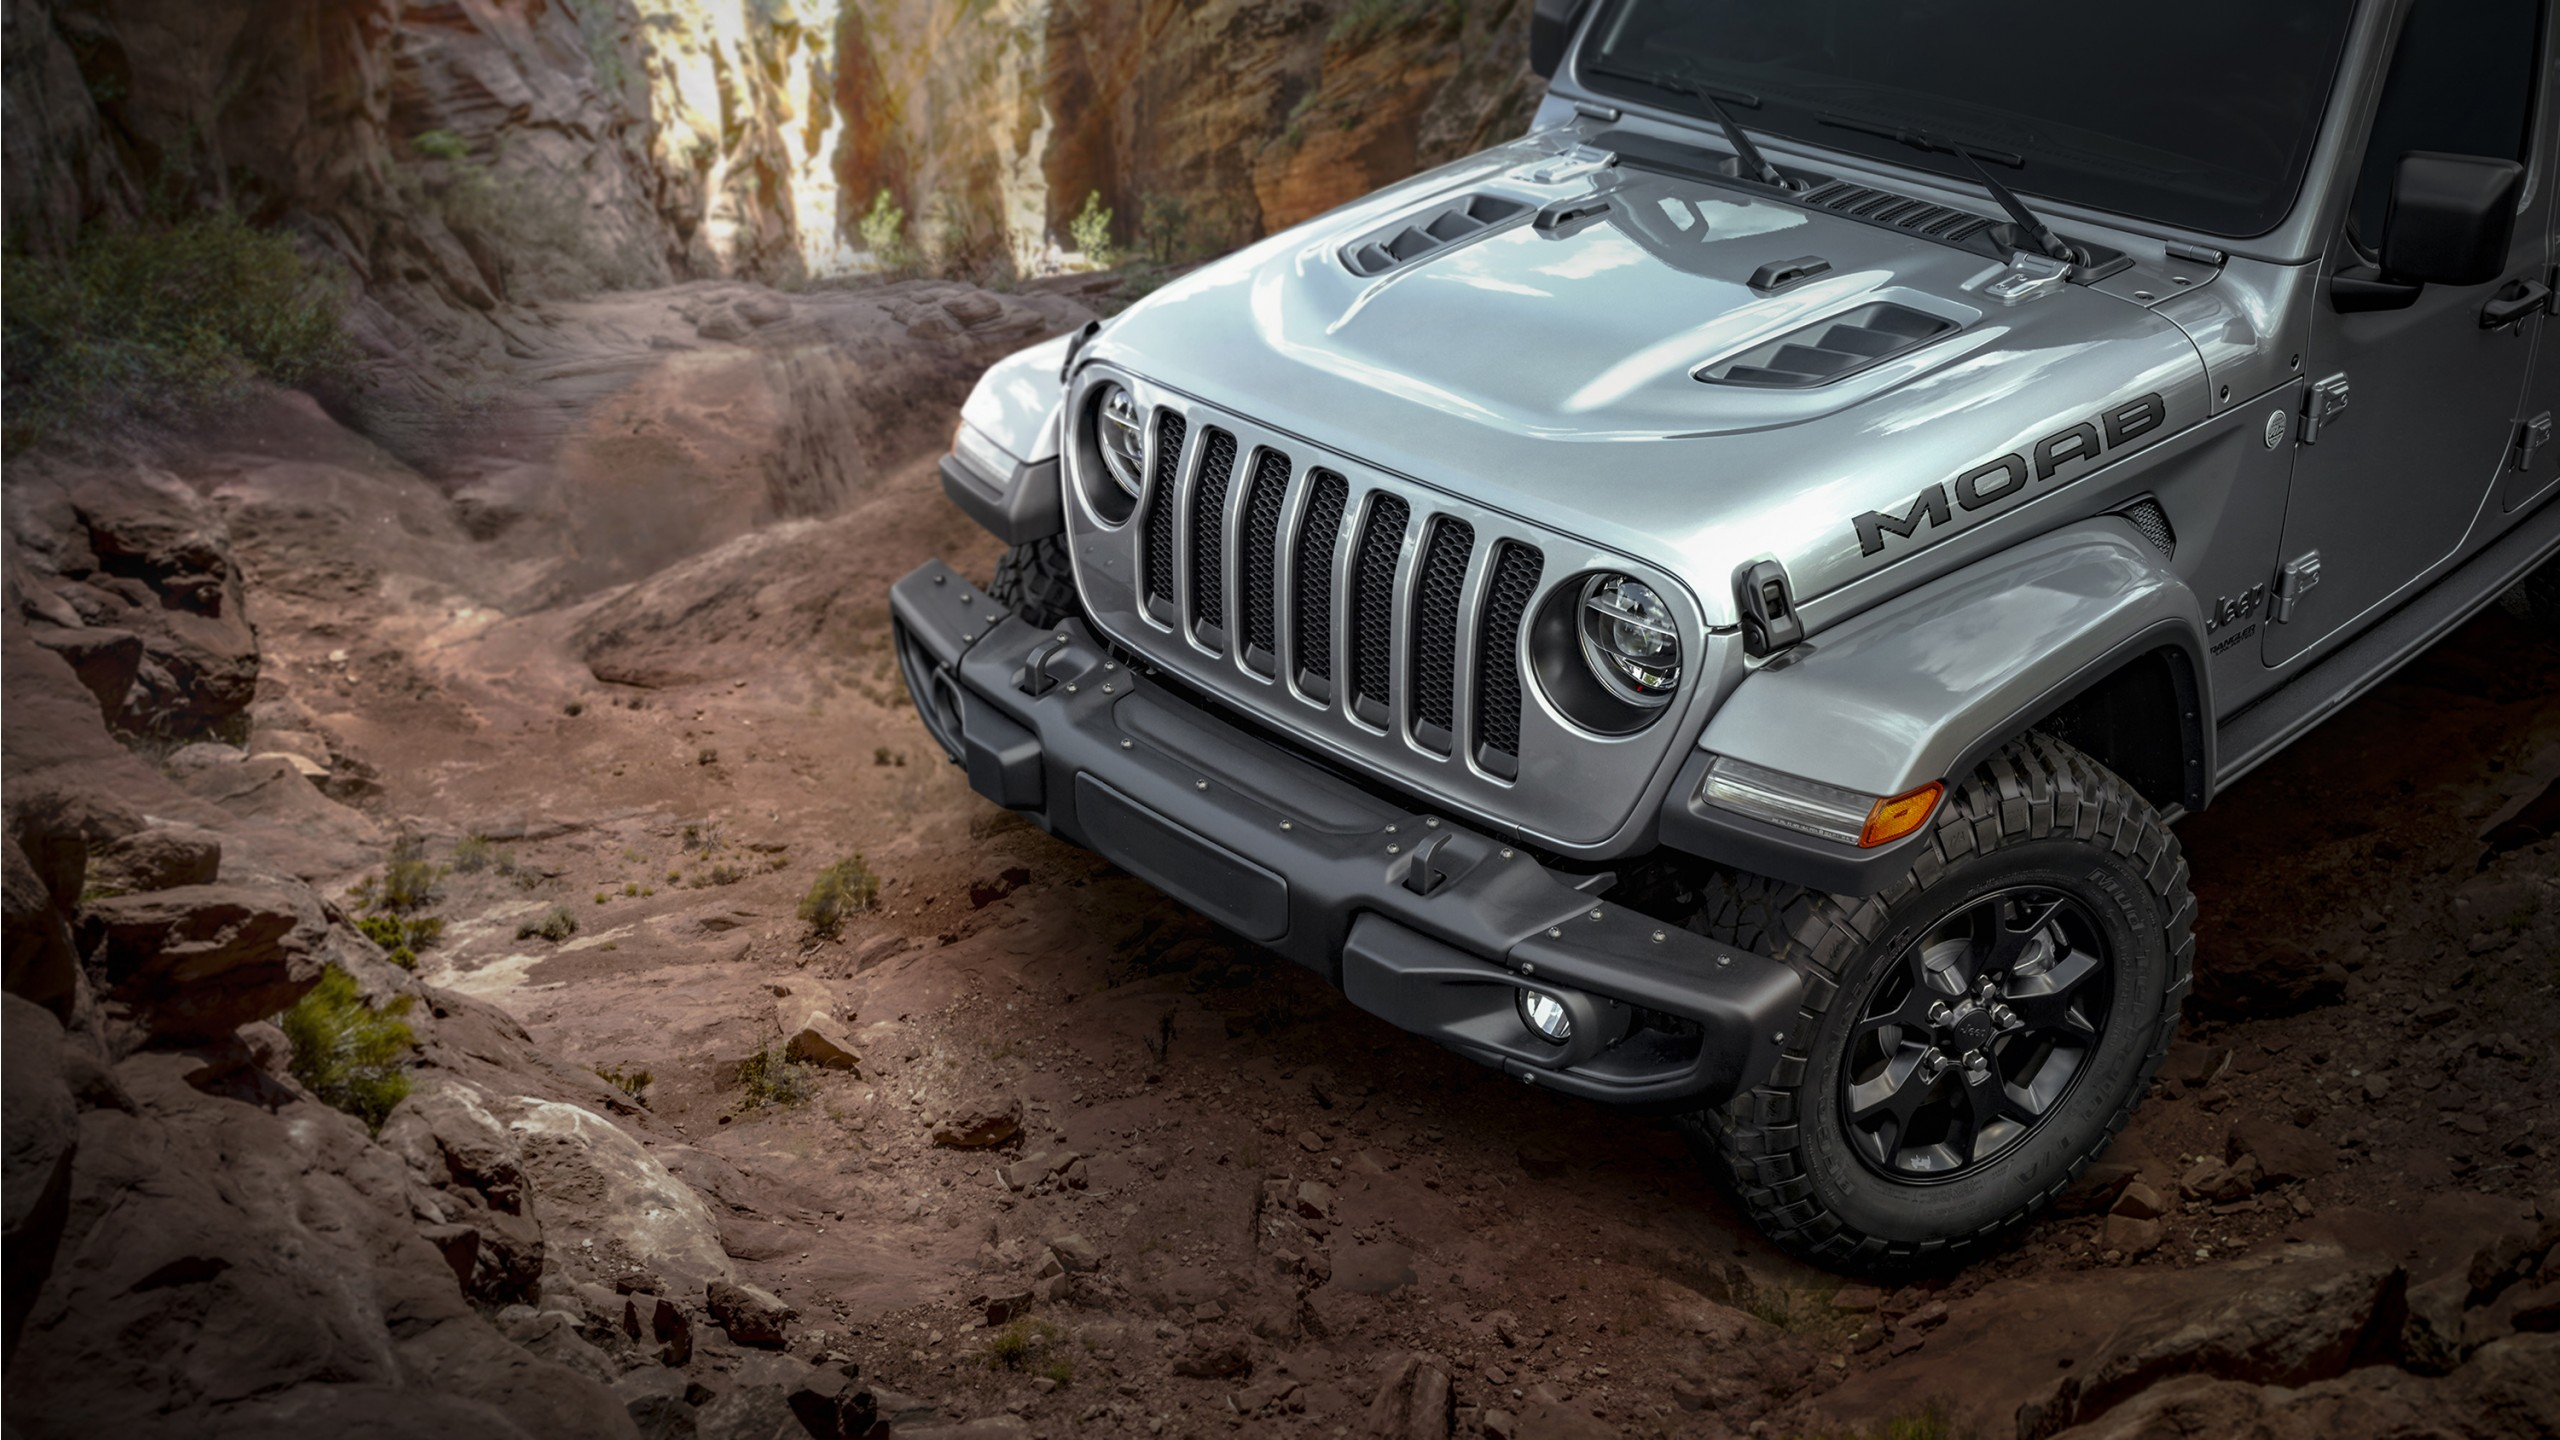 2017 Jeep Wrangler Unlimited Sahara >> 2018 Jeep Wrangler Unlimited Moab Edition 2 Wallpaper | HD Car Wallpapers | ID #11164